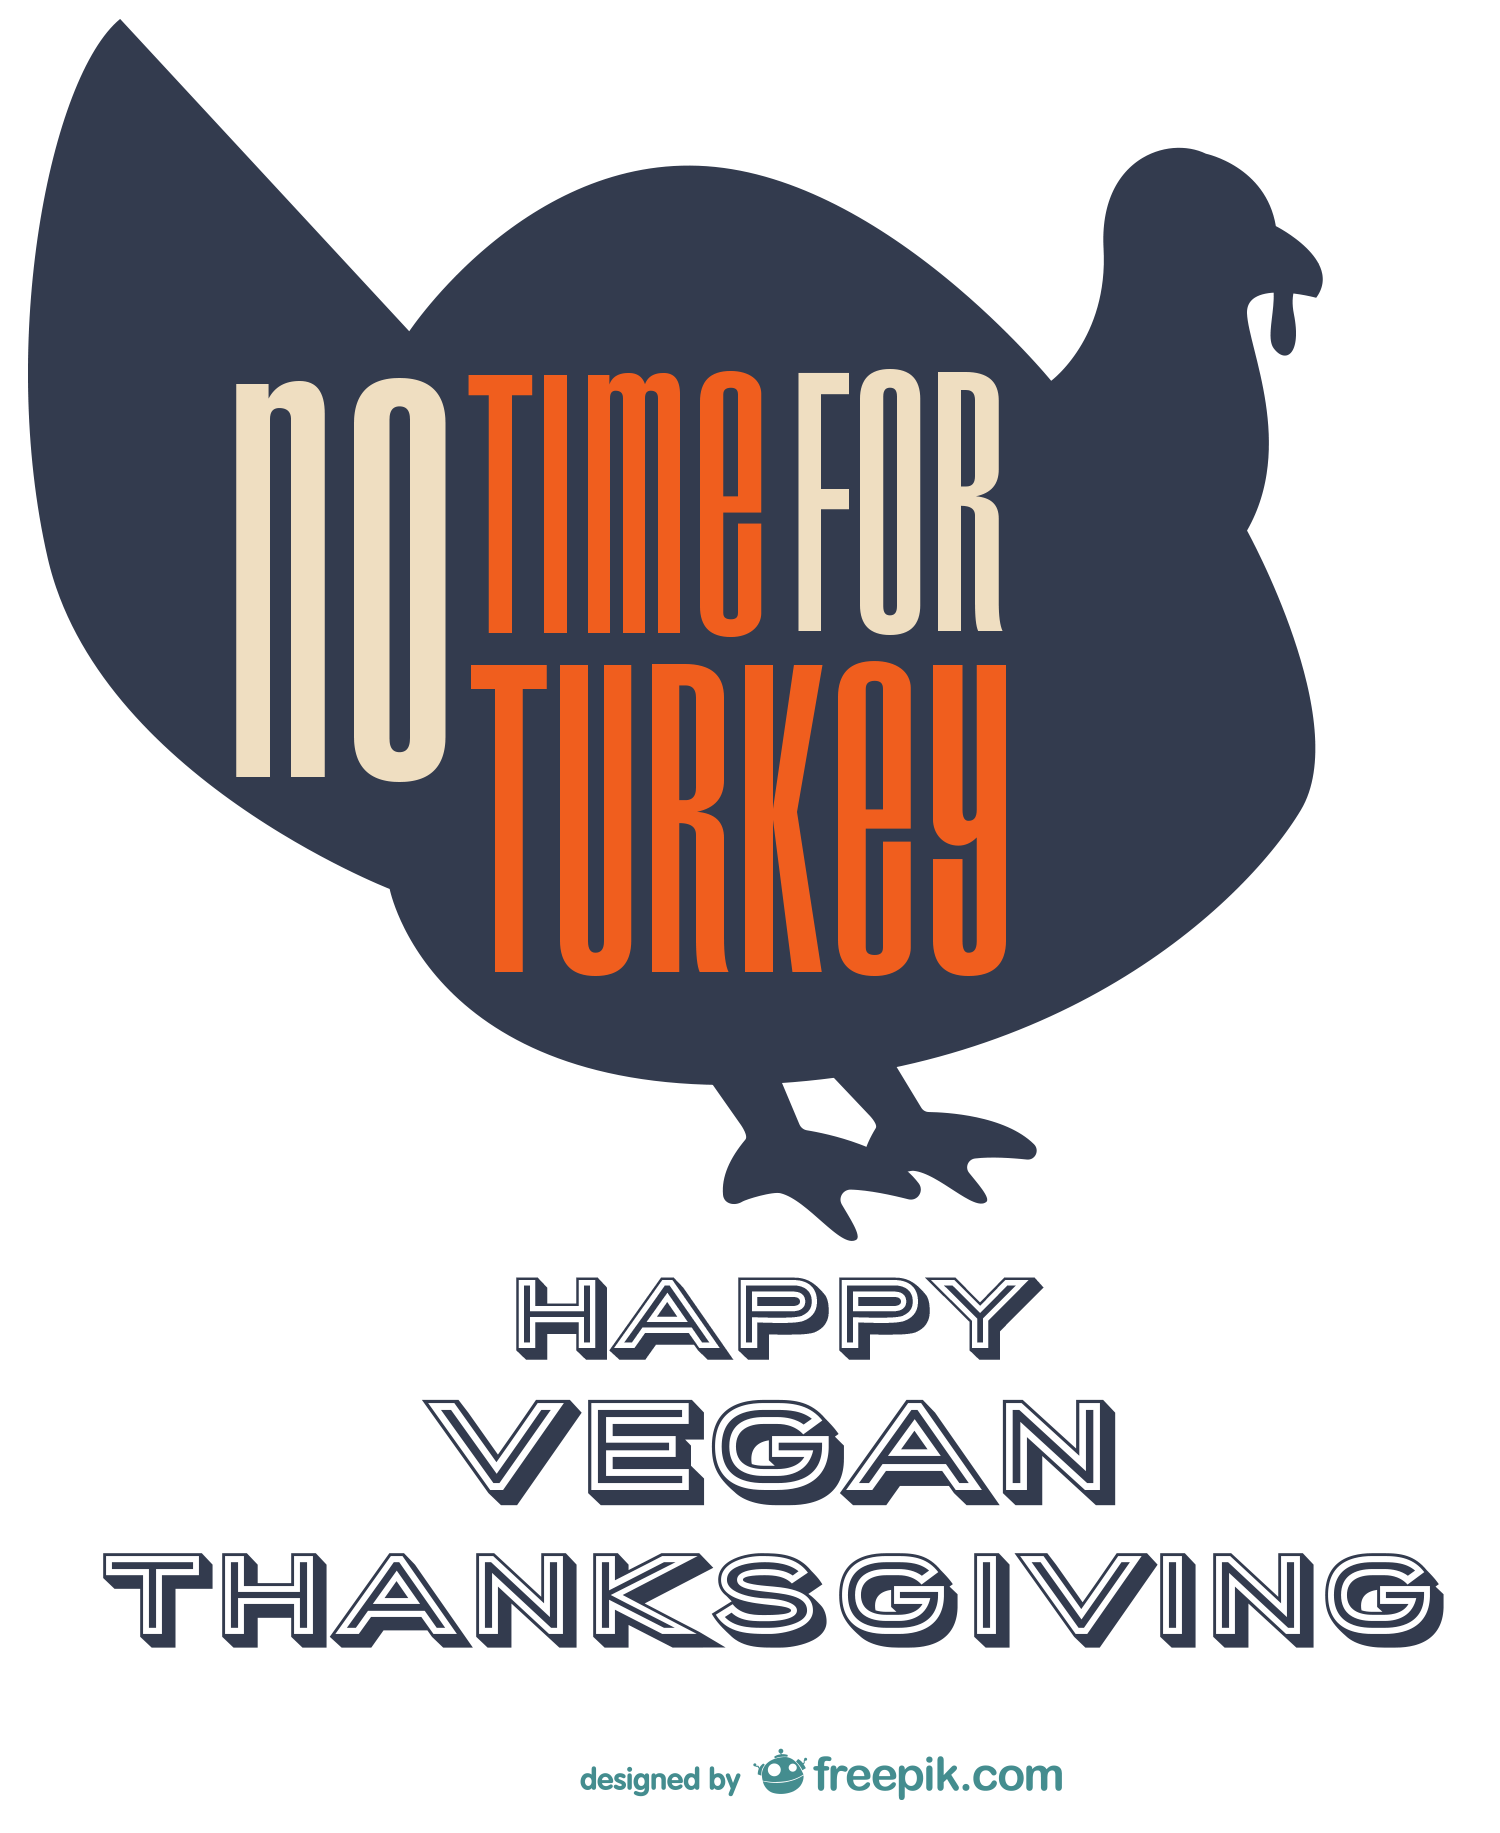 Happy thanksgiving vegan clipart clipart royalty free download Happy Thanksgiving – Vegan – Thanksgiving Blessings clipart royalty free download